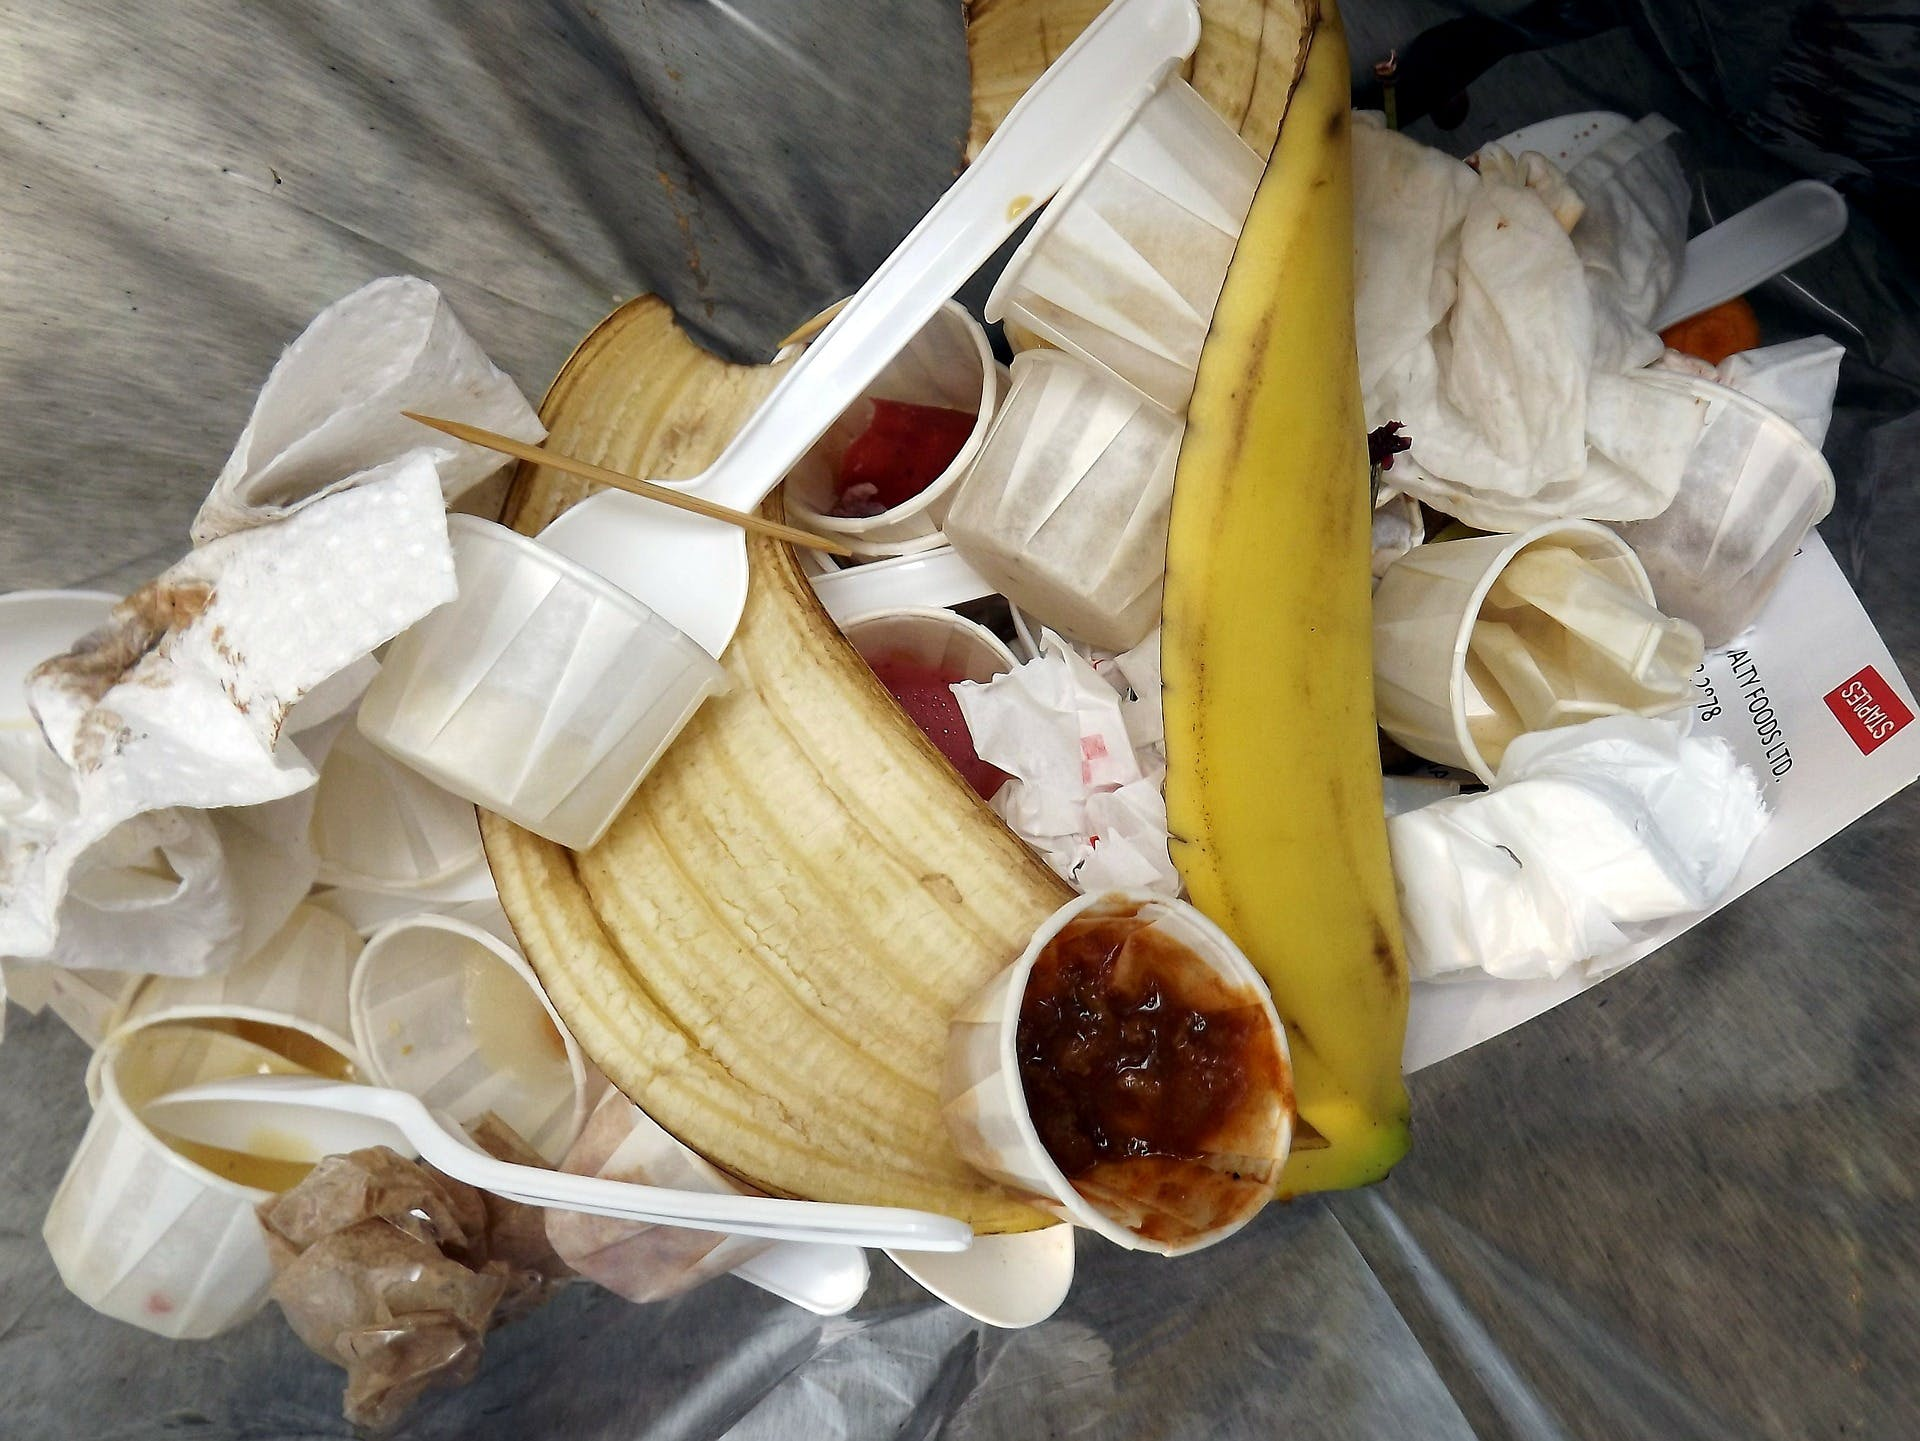 A bin full of rubbish and banana skins